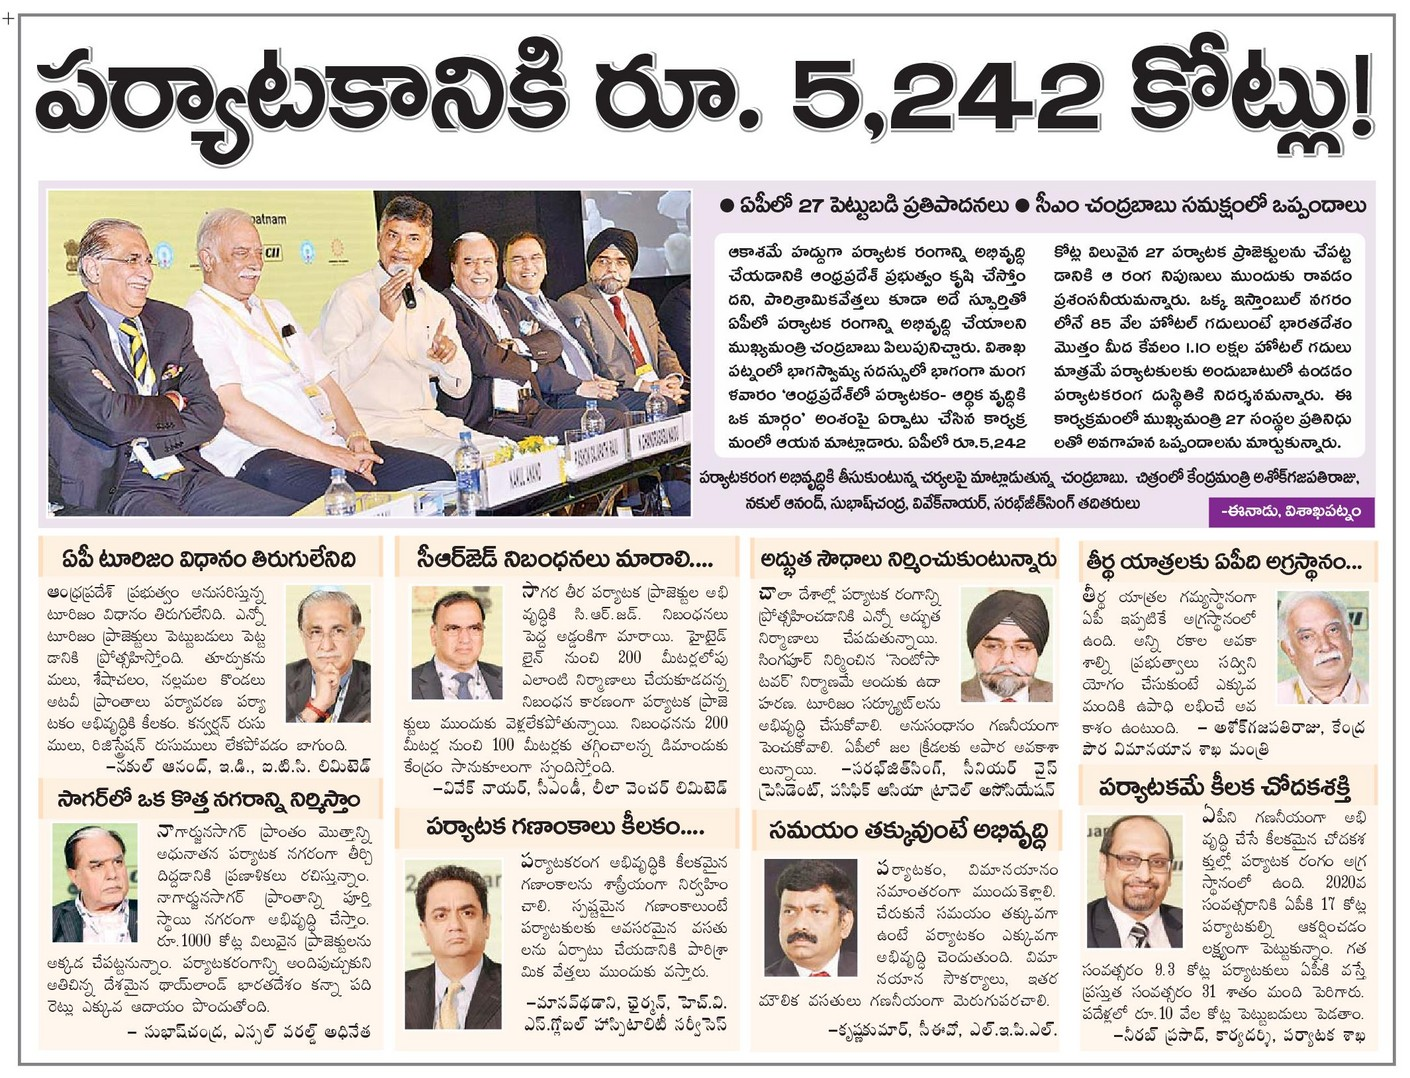 27 Tourism projects with 5,242 crores in Andhra Pradesh